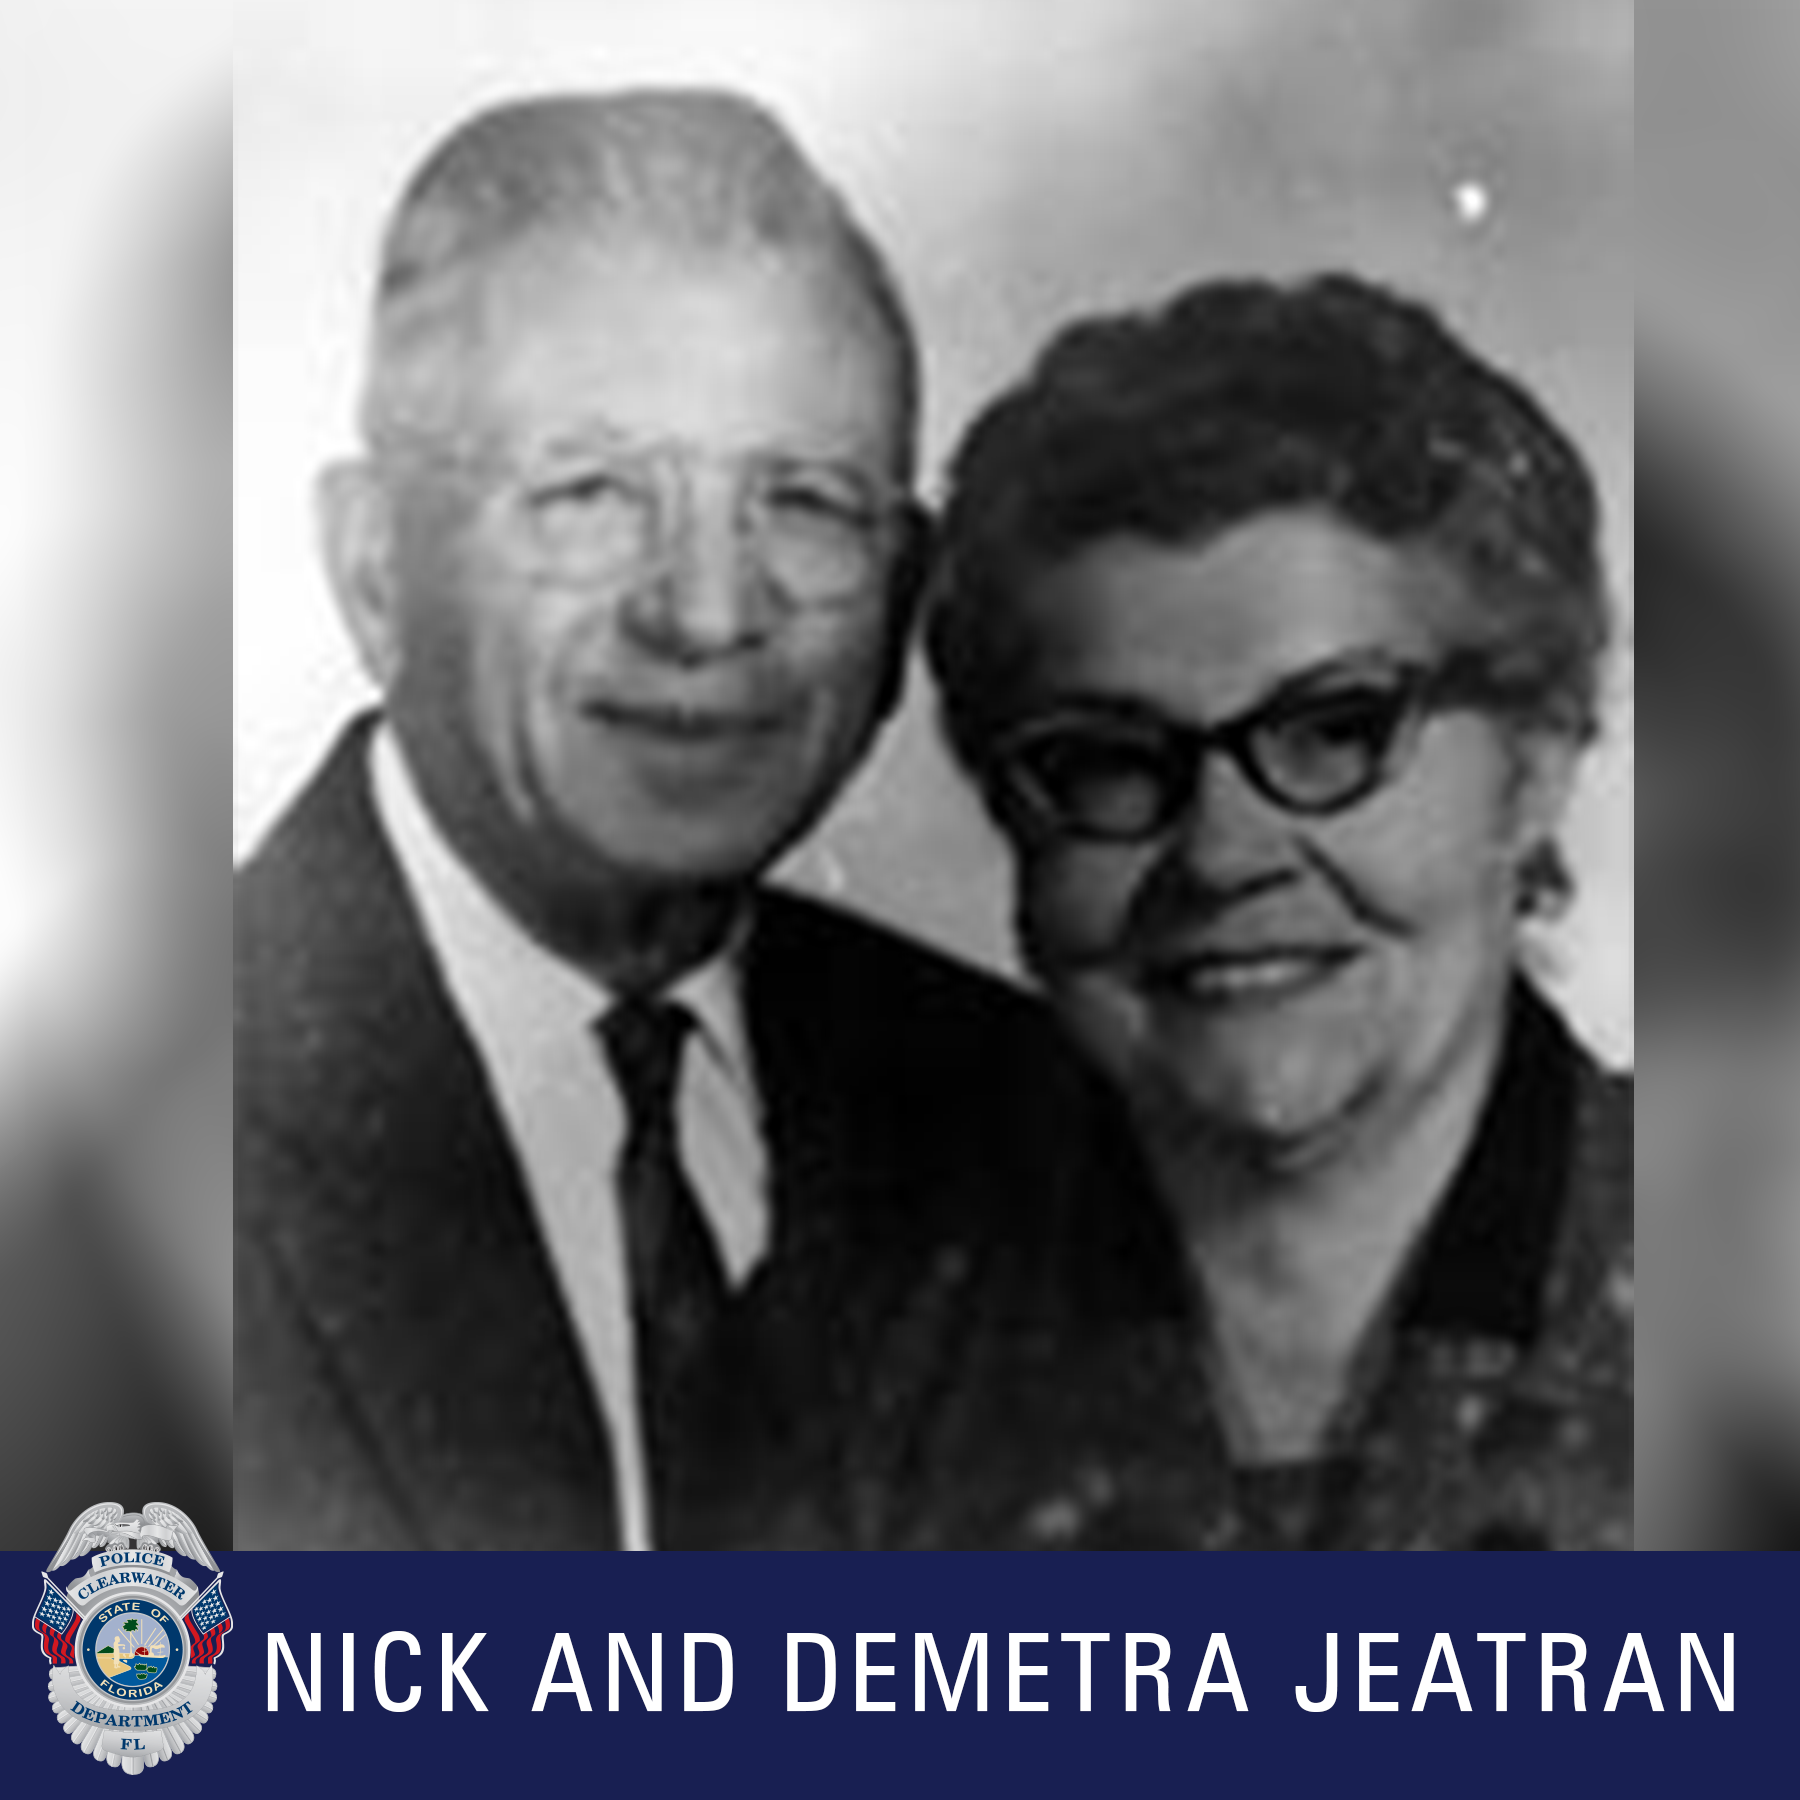 Nick and Demetra Jackson, Clearwater Police Department Shield, Black and white photo of a male and female smiling and wearing glasses